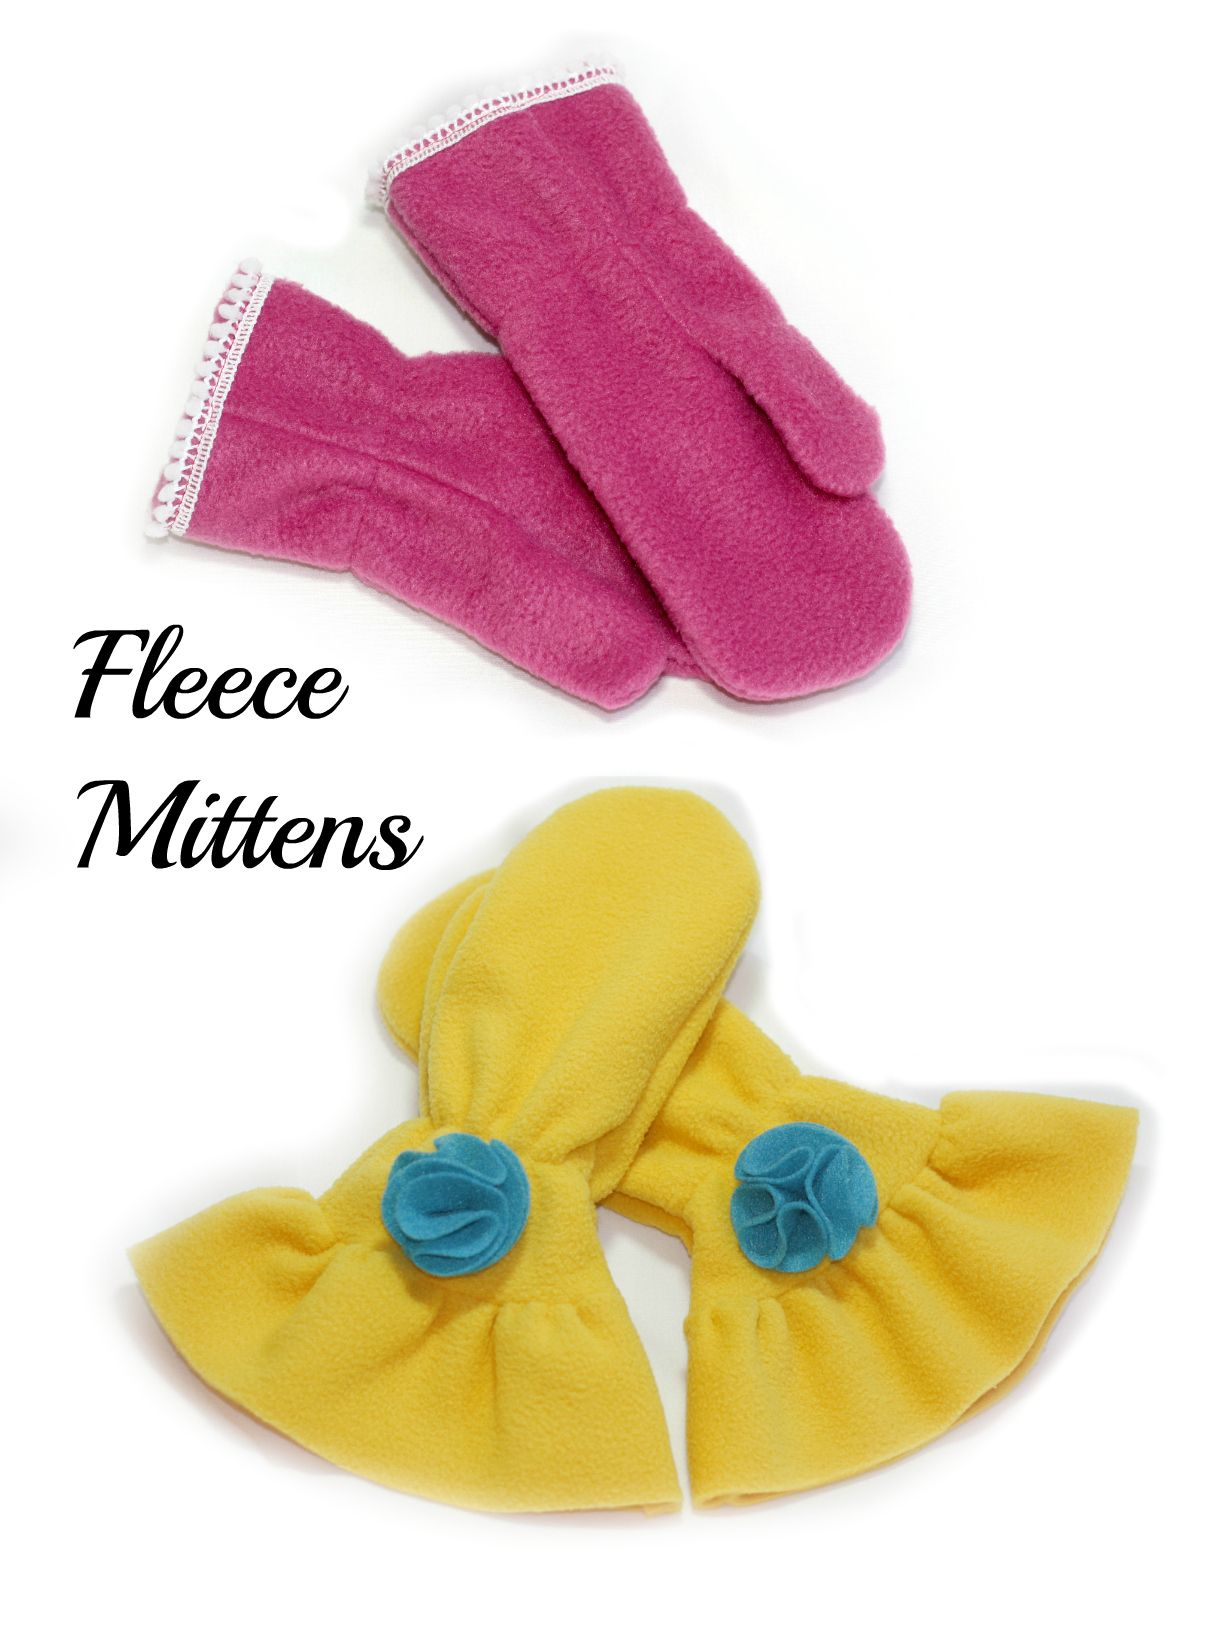 Whimsy Couture Boys and Girls Fleece Mittens PDF Sewing Pattern on sale for $4.00